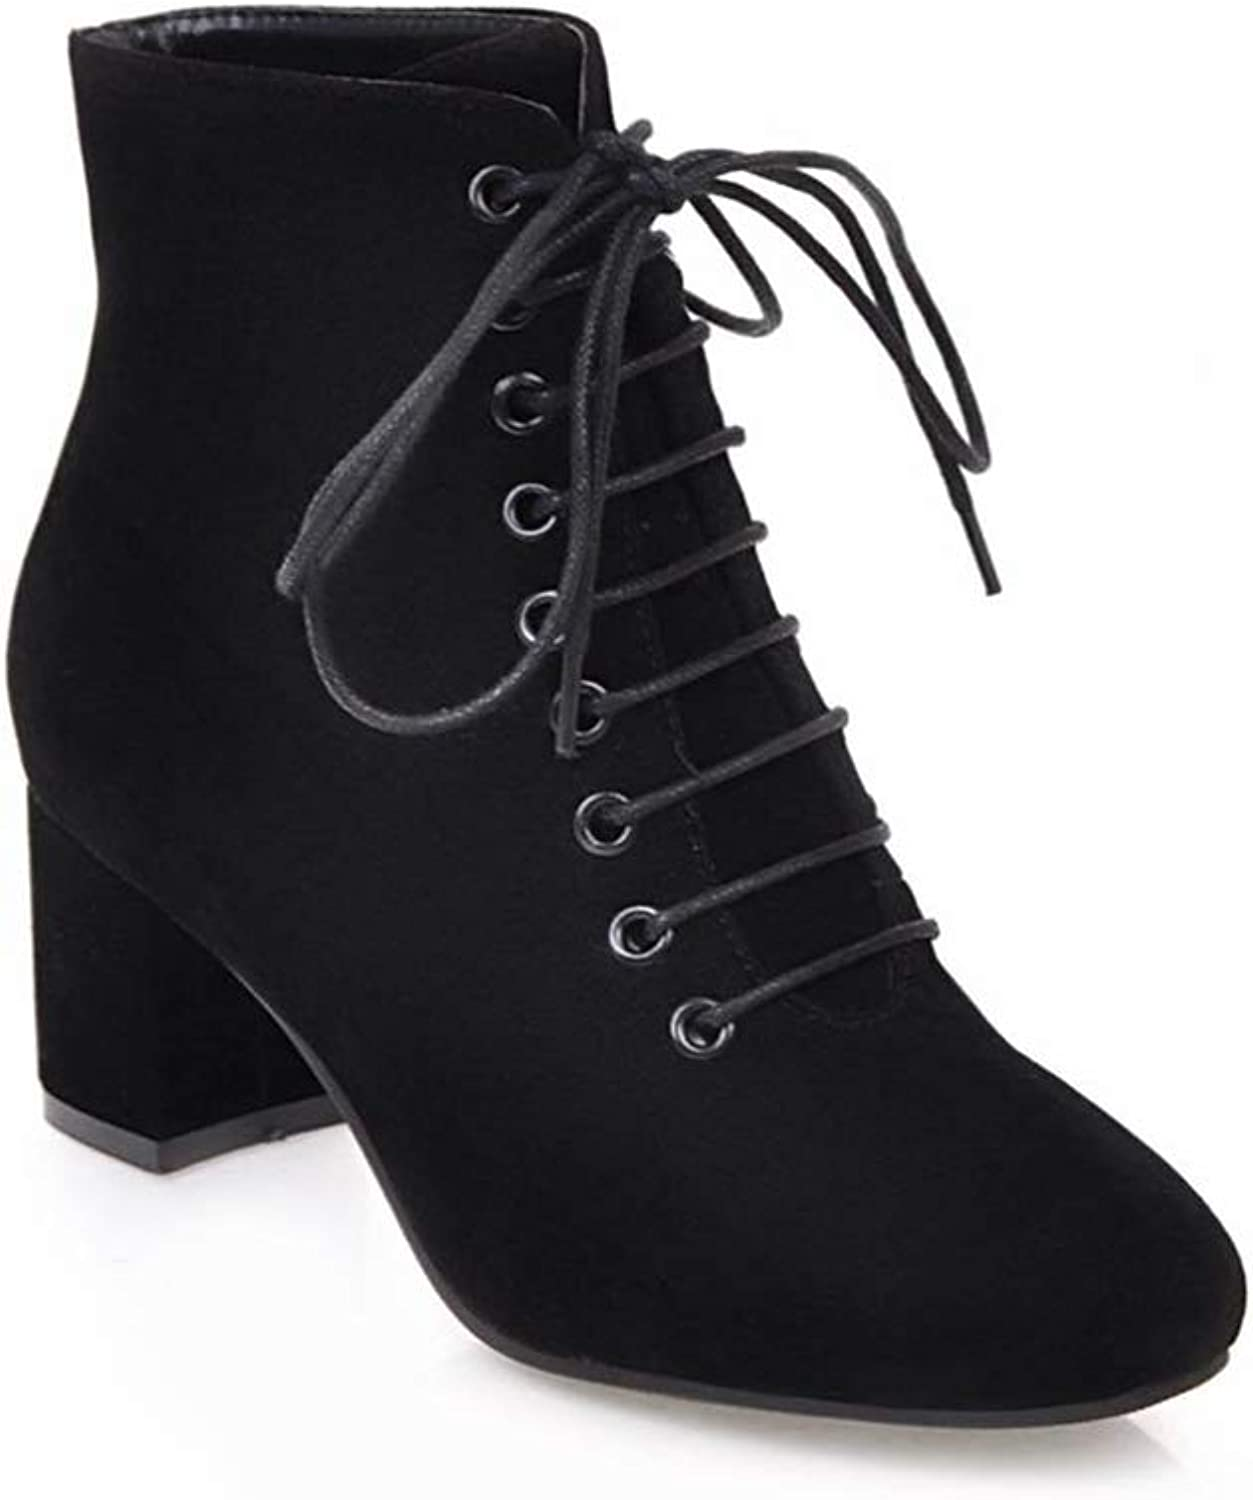 Woman Ankle Boots Lace Up Mid Square Heel Round Toe Ladies Sexy Fashion Casual Party Office Short Boots